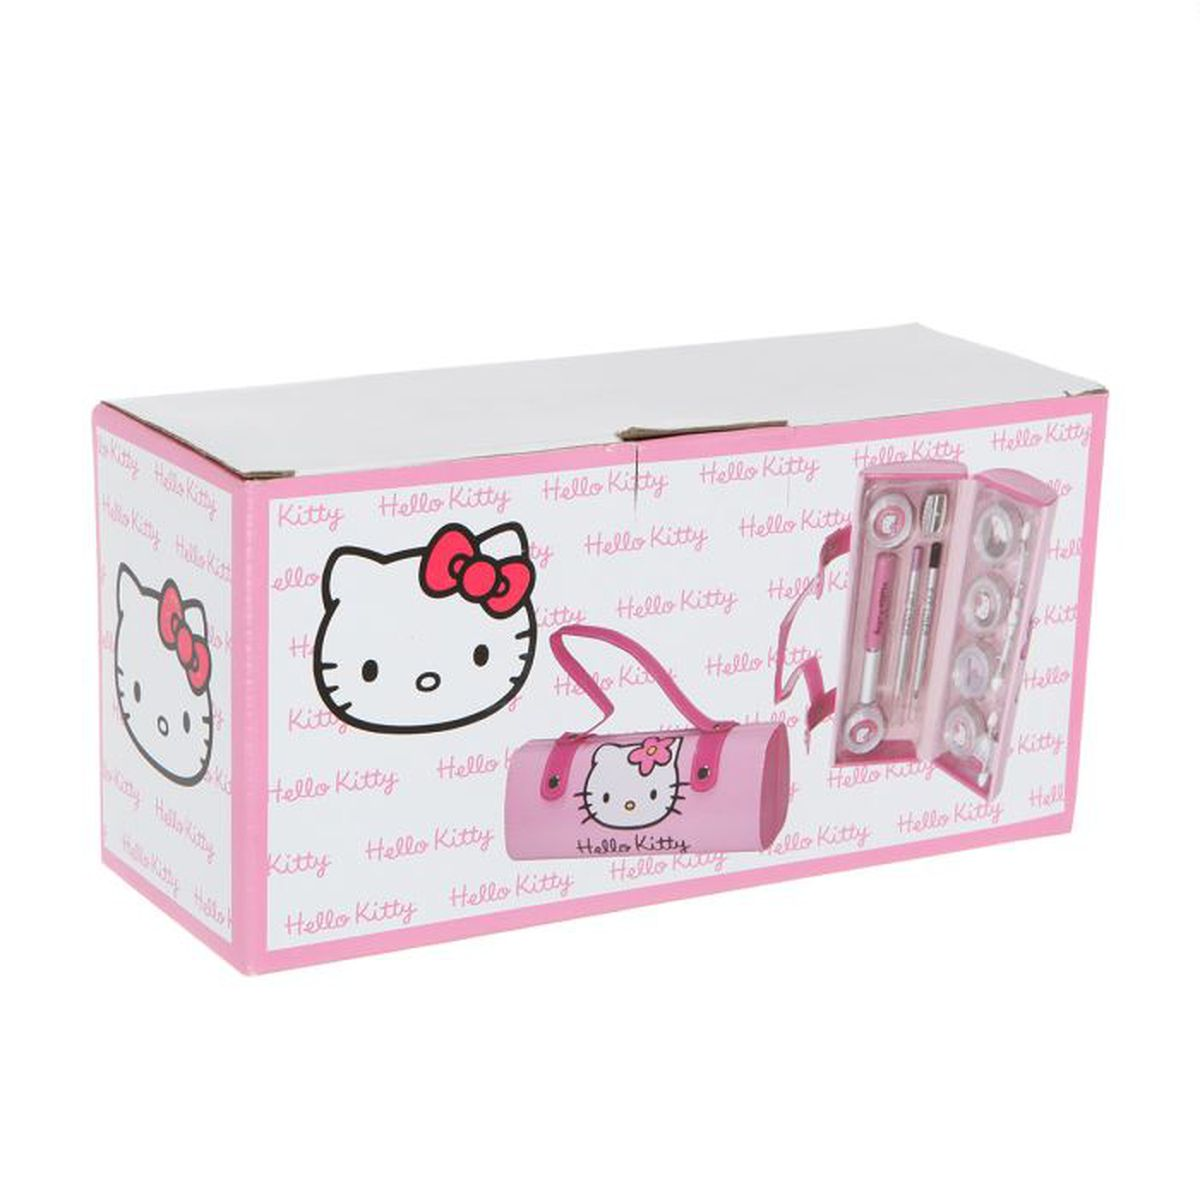 malette de maquillage hello kitty achat vente palette. Black Bedroom Furniture Sets. Home Design Ideas